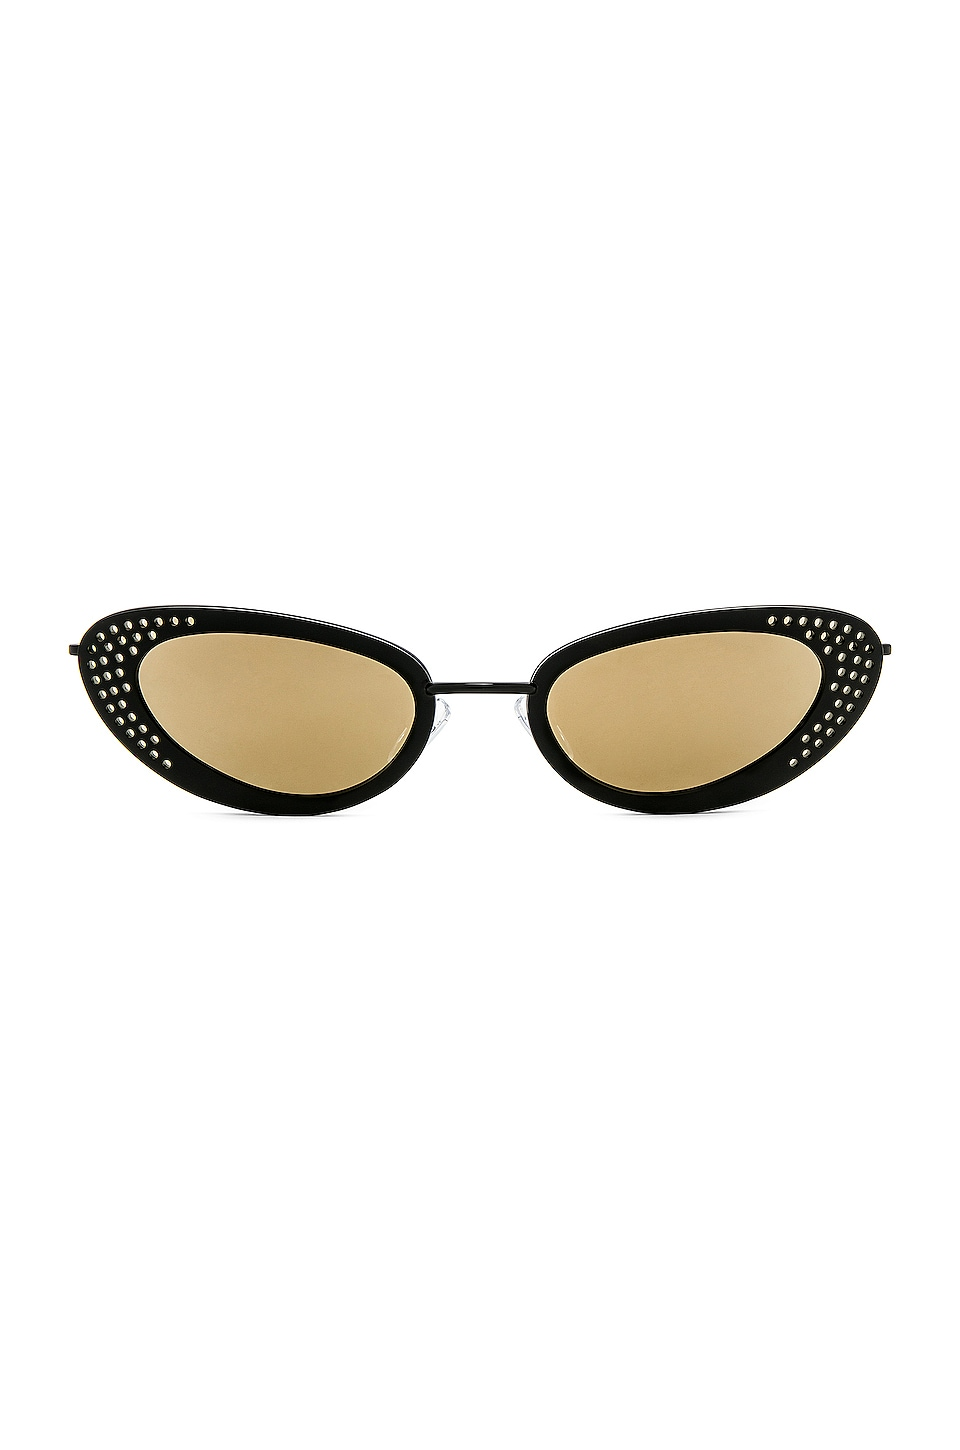 Le Specs x Adam Selman The Royale in Black & Yellow Mirror